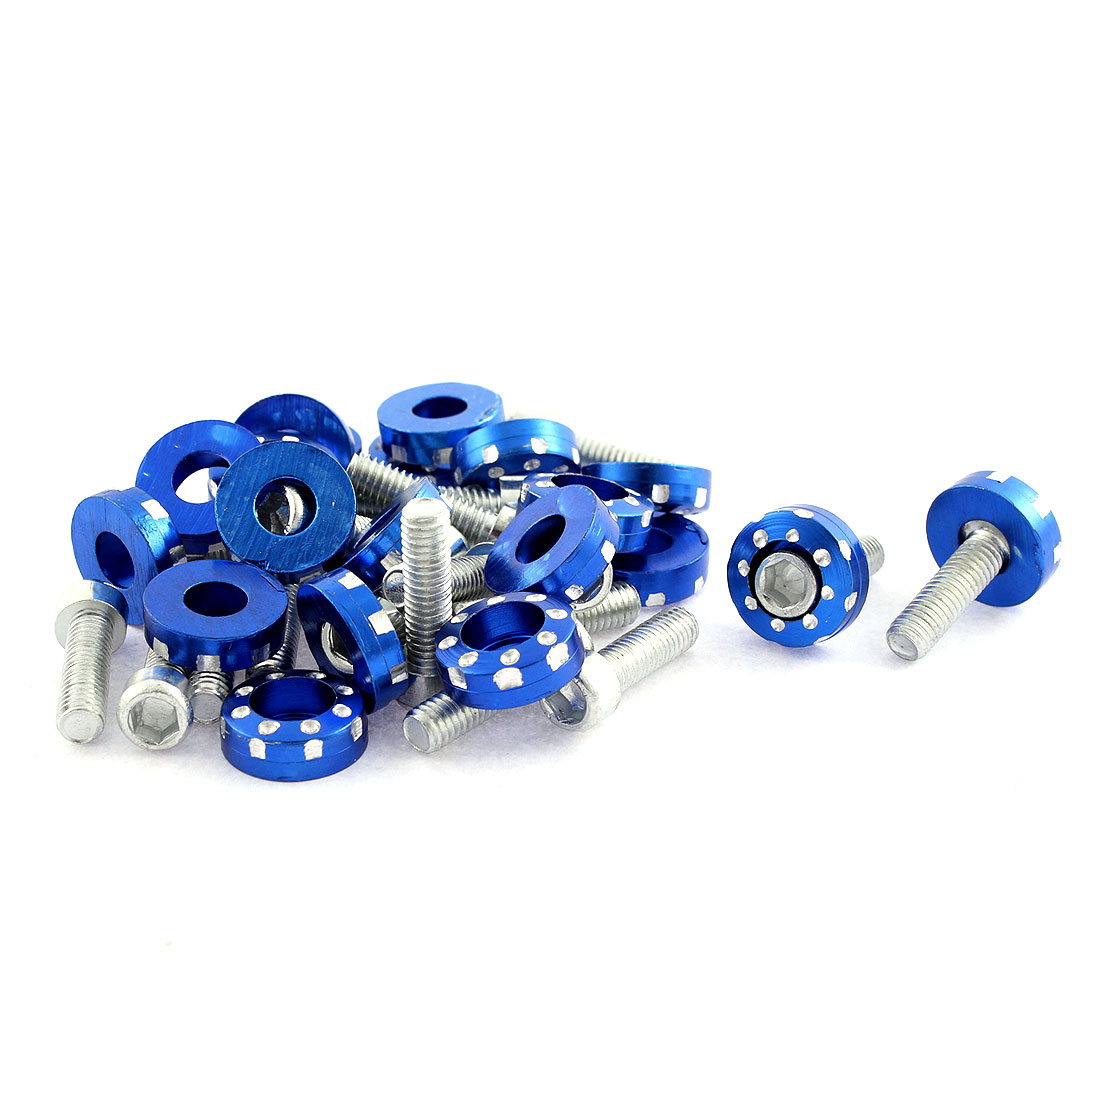 20 Pcs 6mm Thread Dia License Plate Screws Bolts Decoration Blue for Car Truck